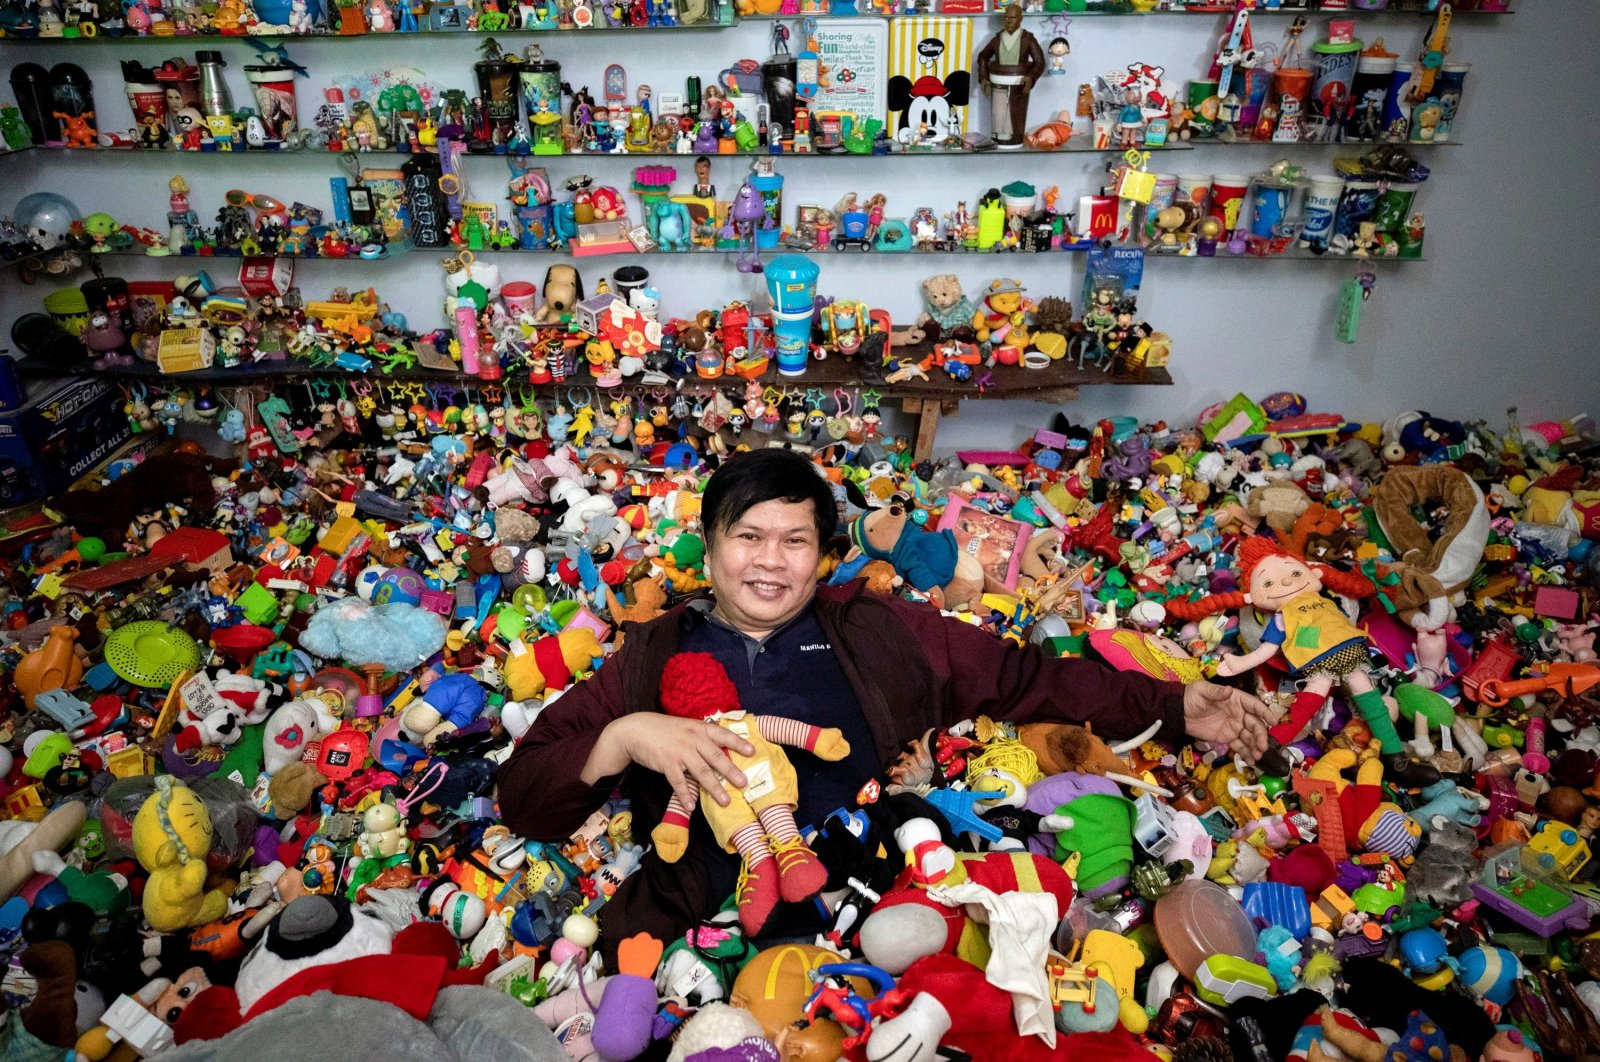 Percival Lugue, who has the Guinness world record for the largest fast-food toy collection, poses with his toy collection in his home in Apalit, Pampanga province, Philippines, April 20, 2021. (REUTERS Photo)